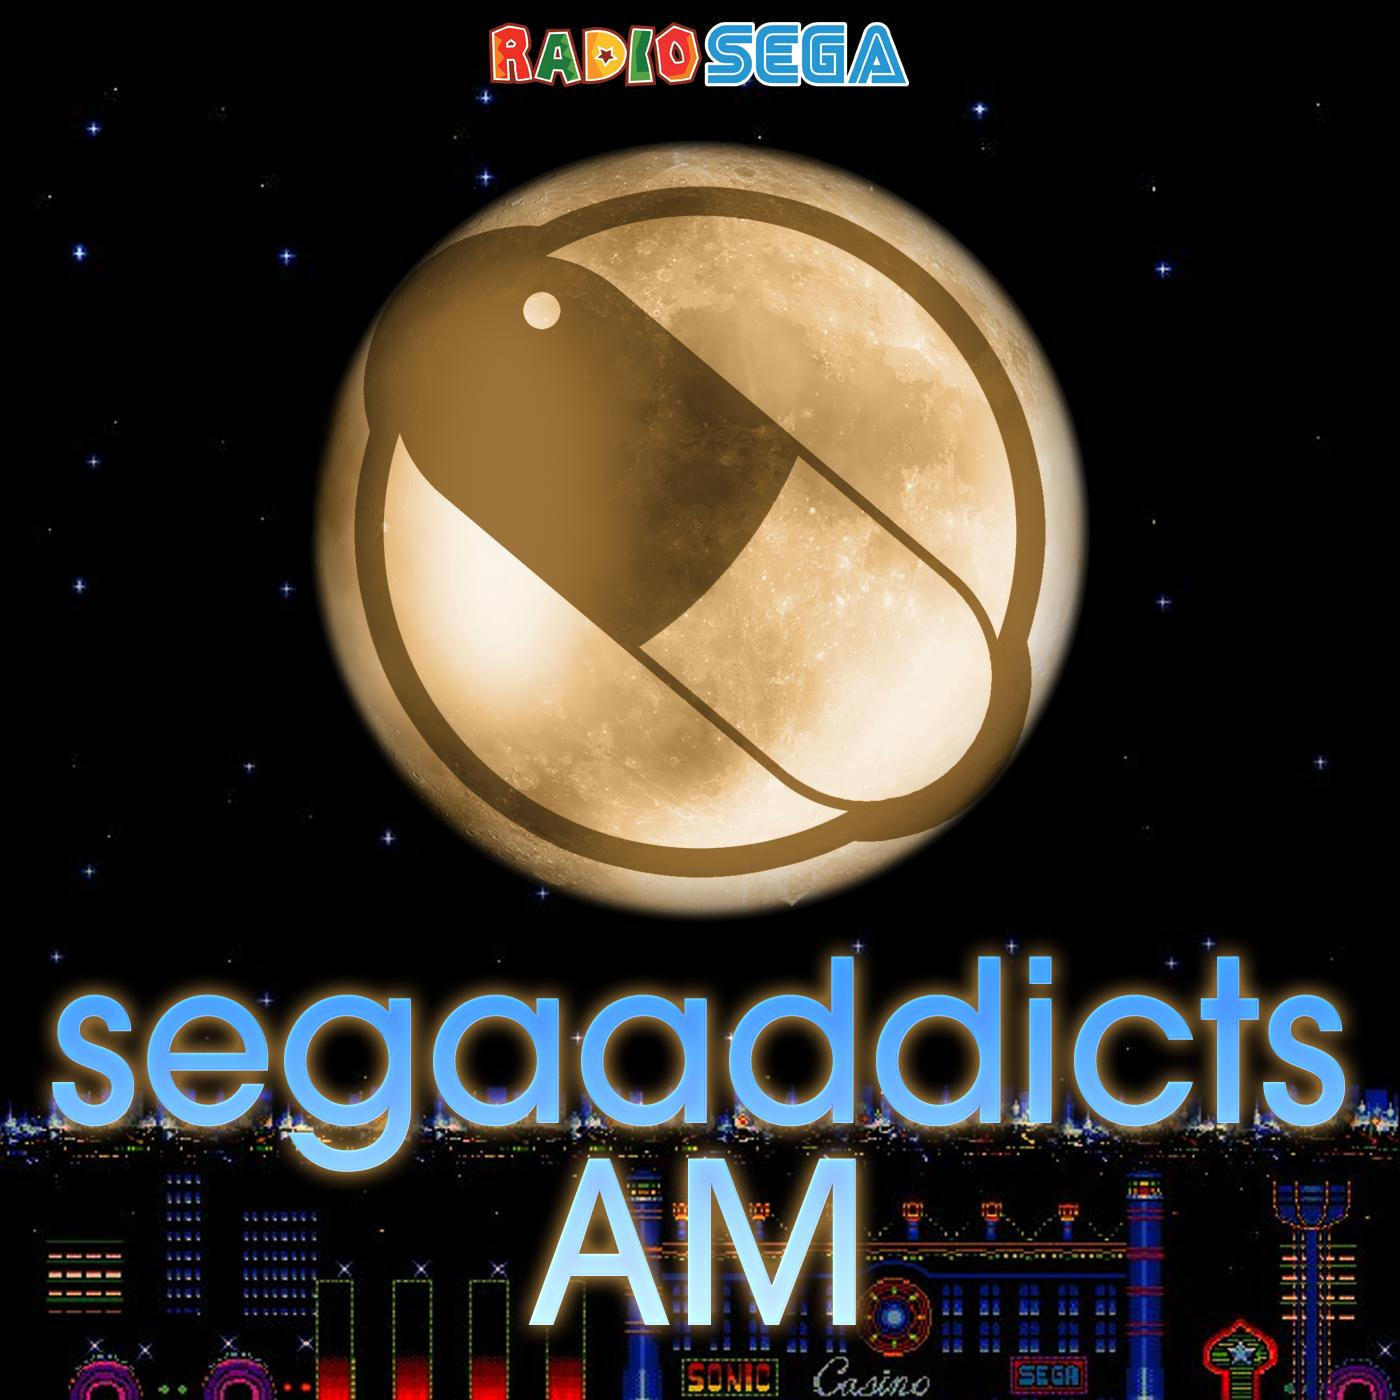 Sega Addicts AM